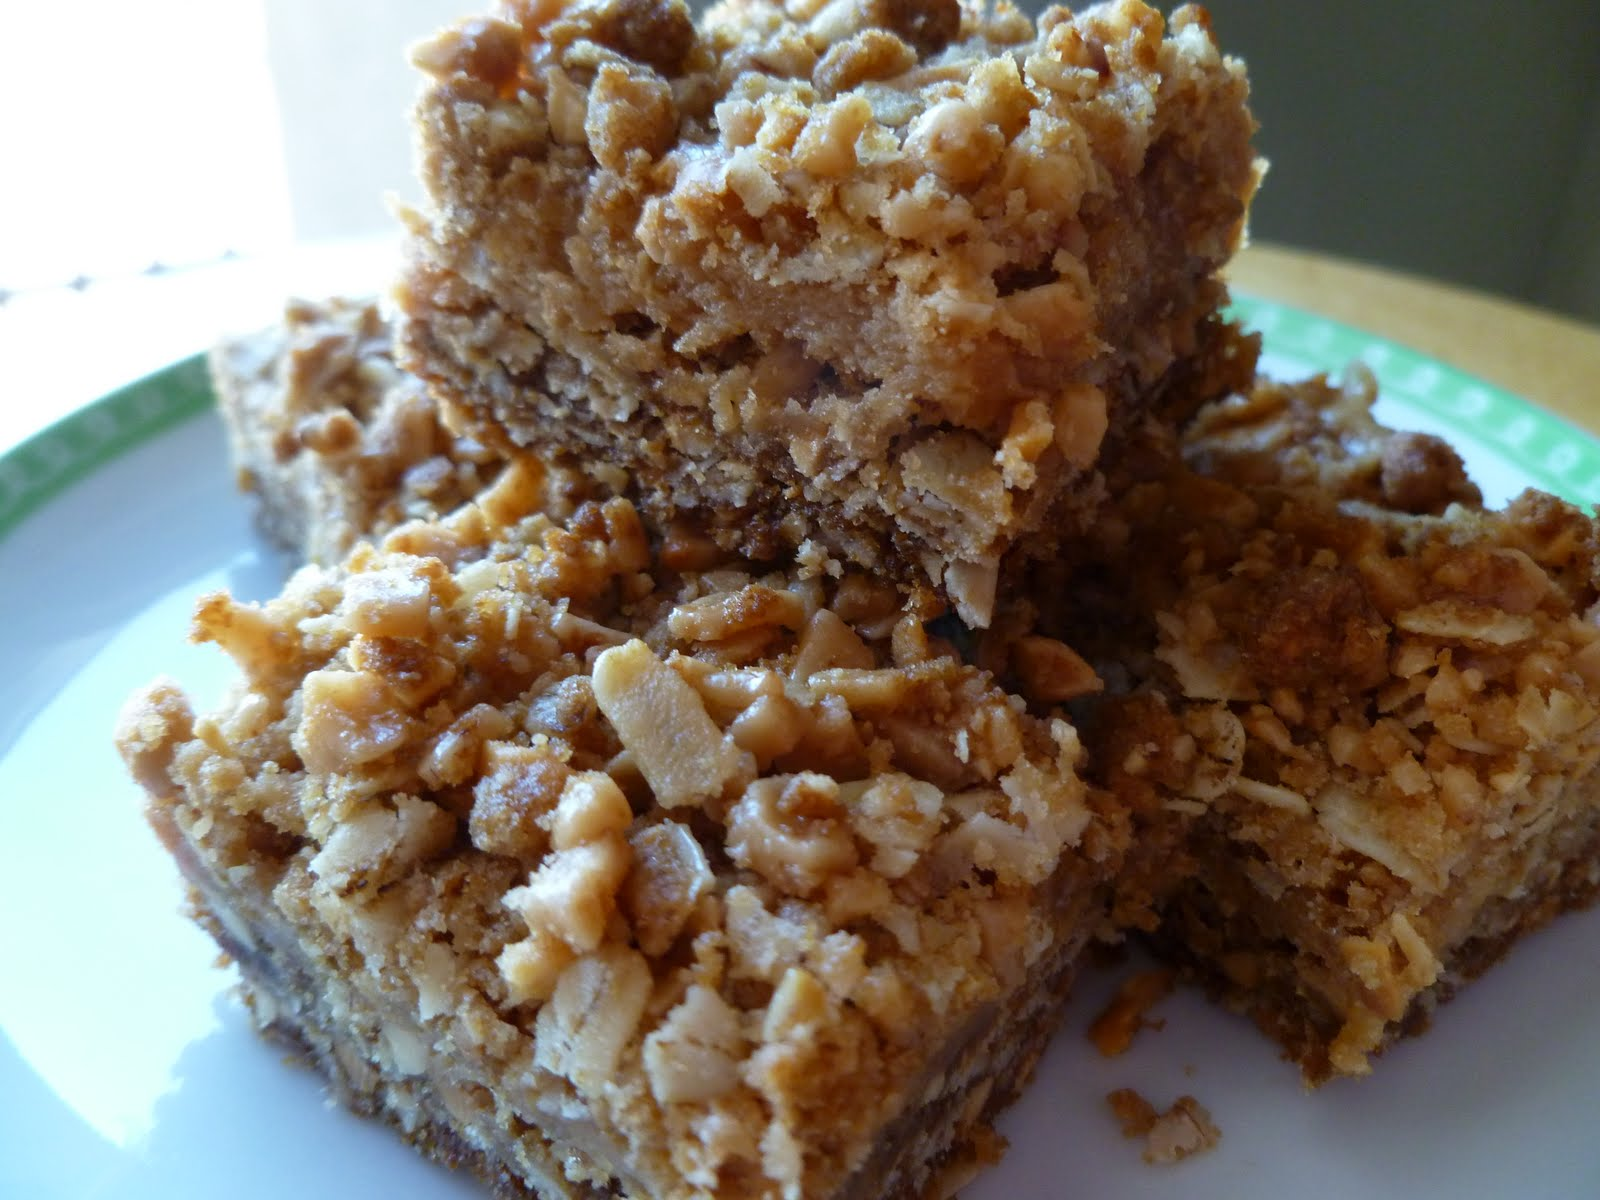 The Pastry Chef's Baking: Crunchy Peanut Brickle Bars